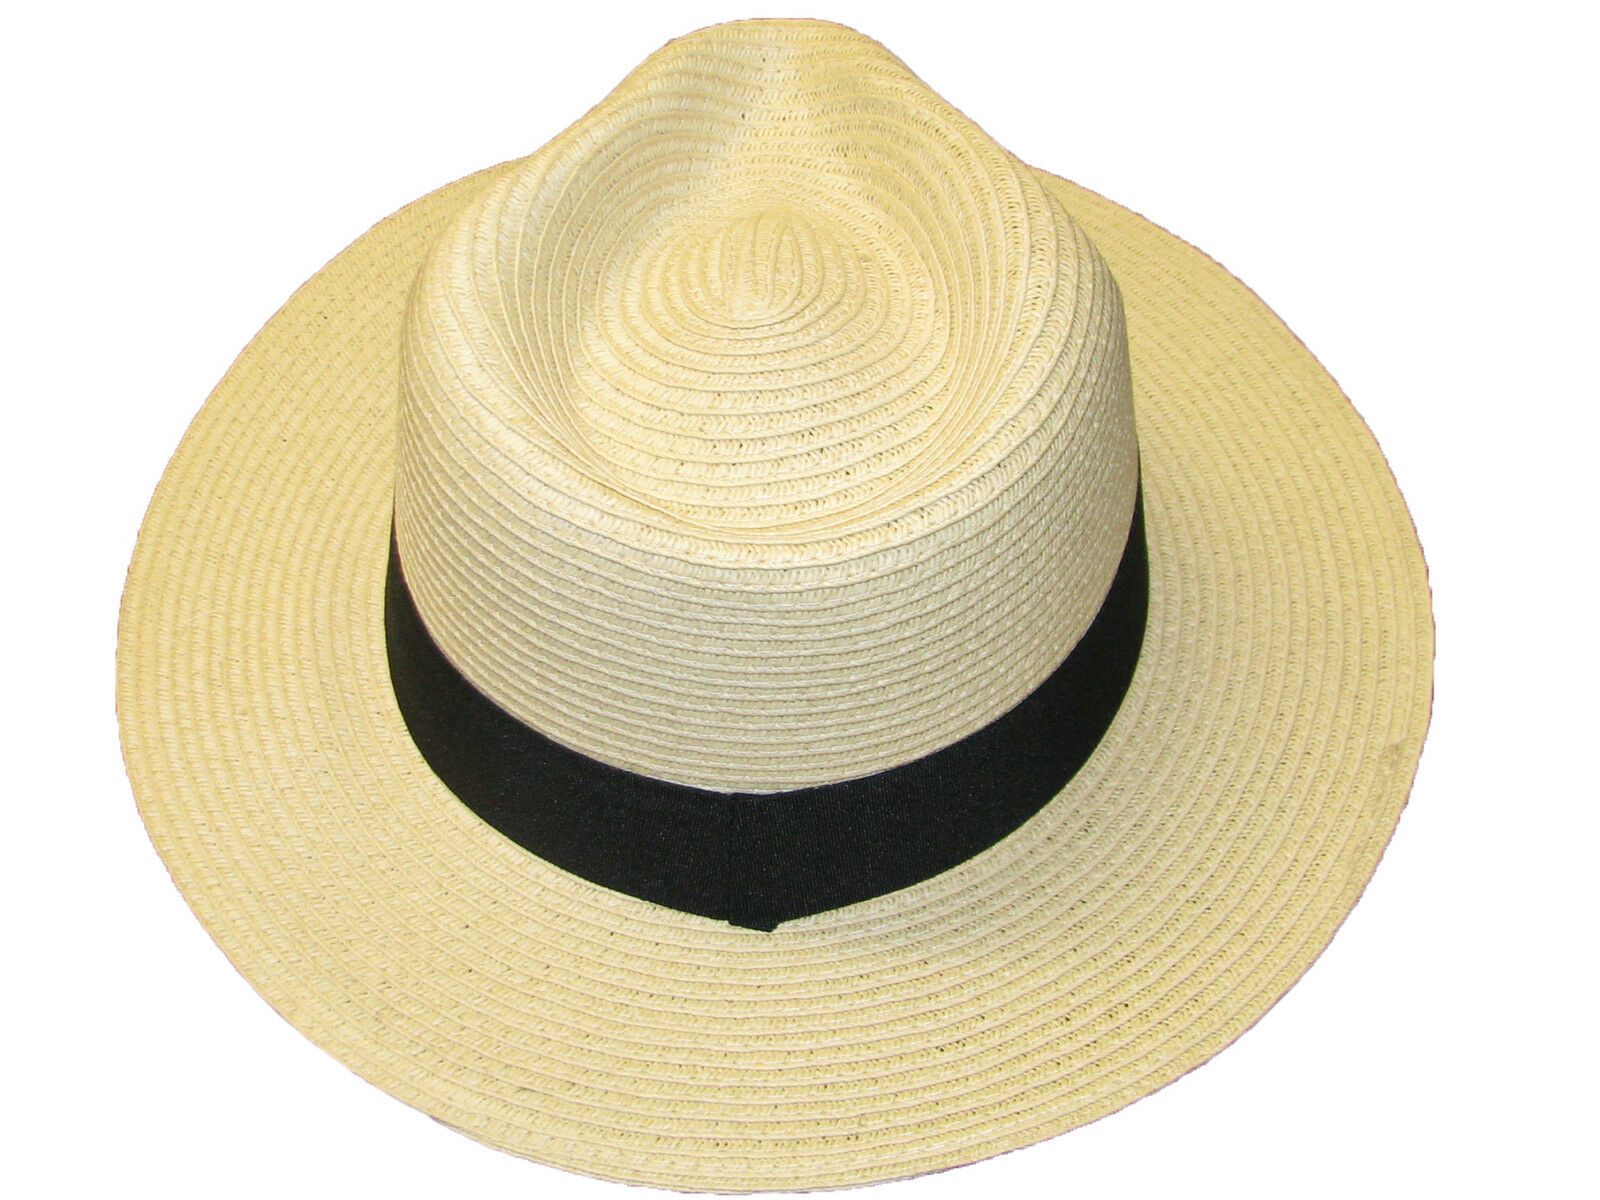 Details about Mens Ladies Straw Fedora Panama Style Sun Hat Crushable  Summer Hat 3 Sizes ee374620c8d6